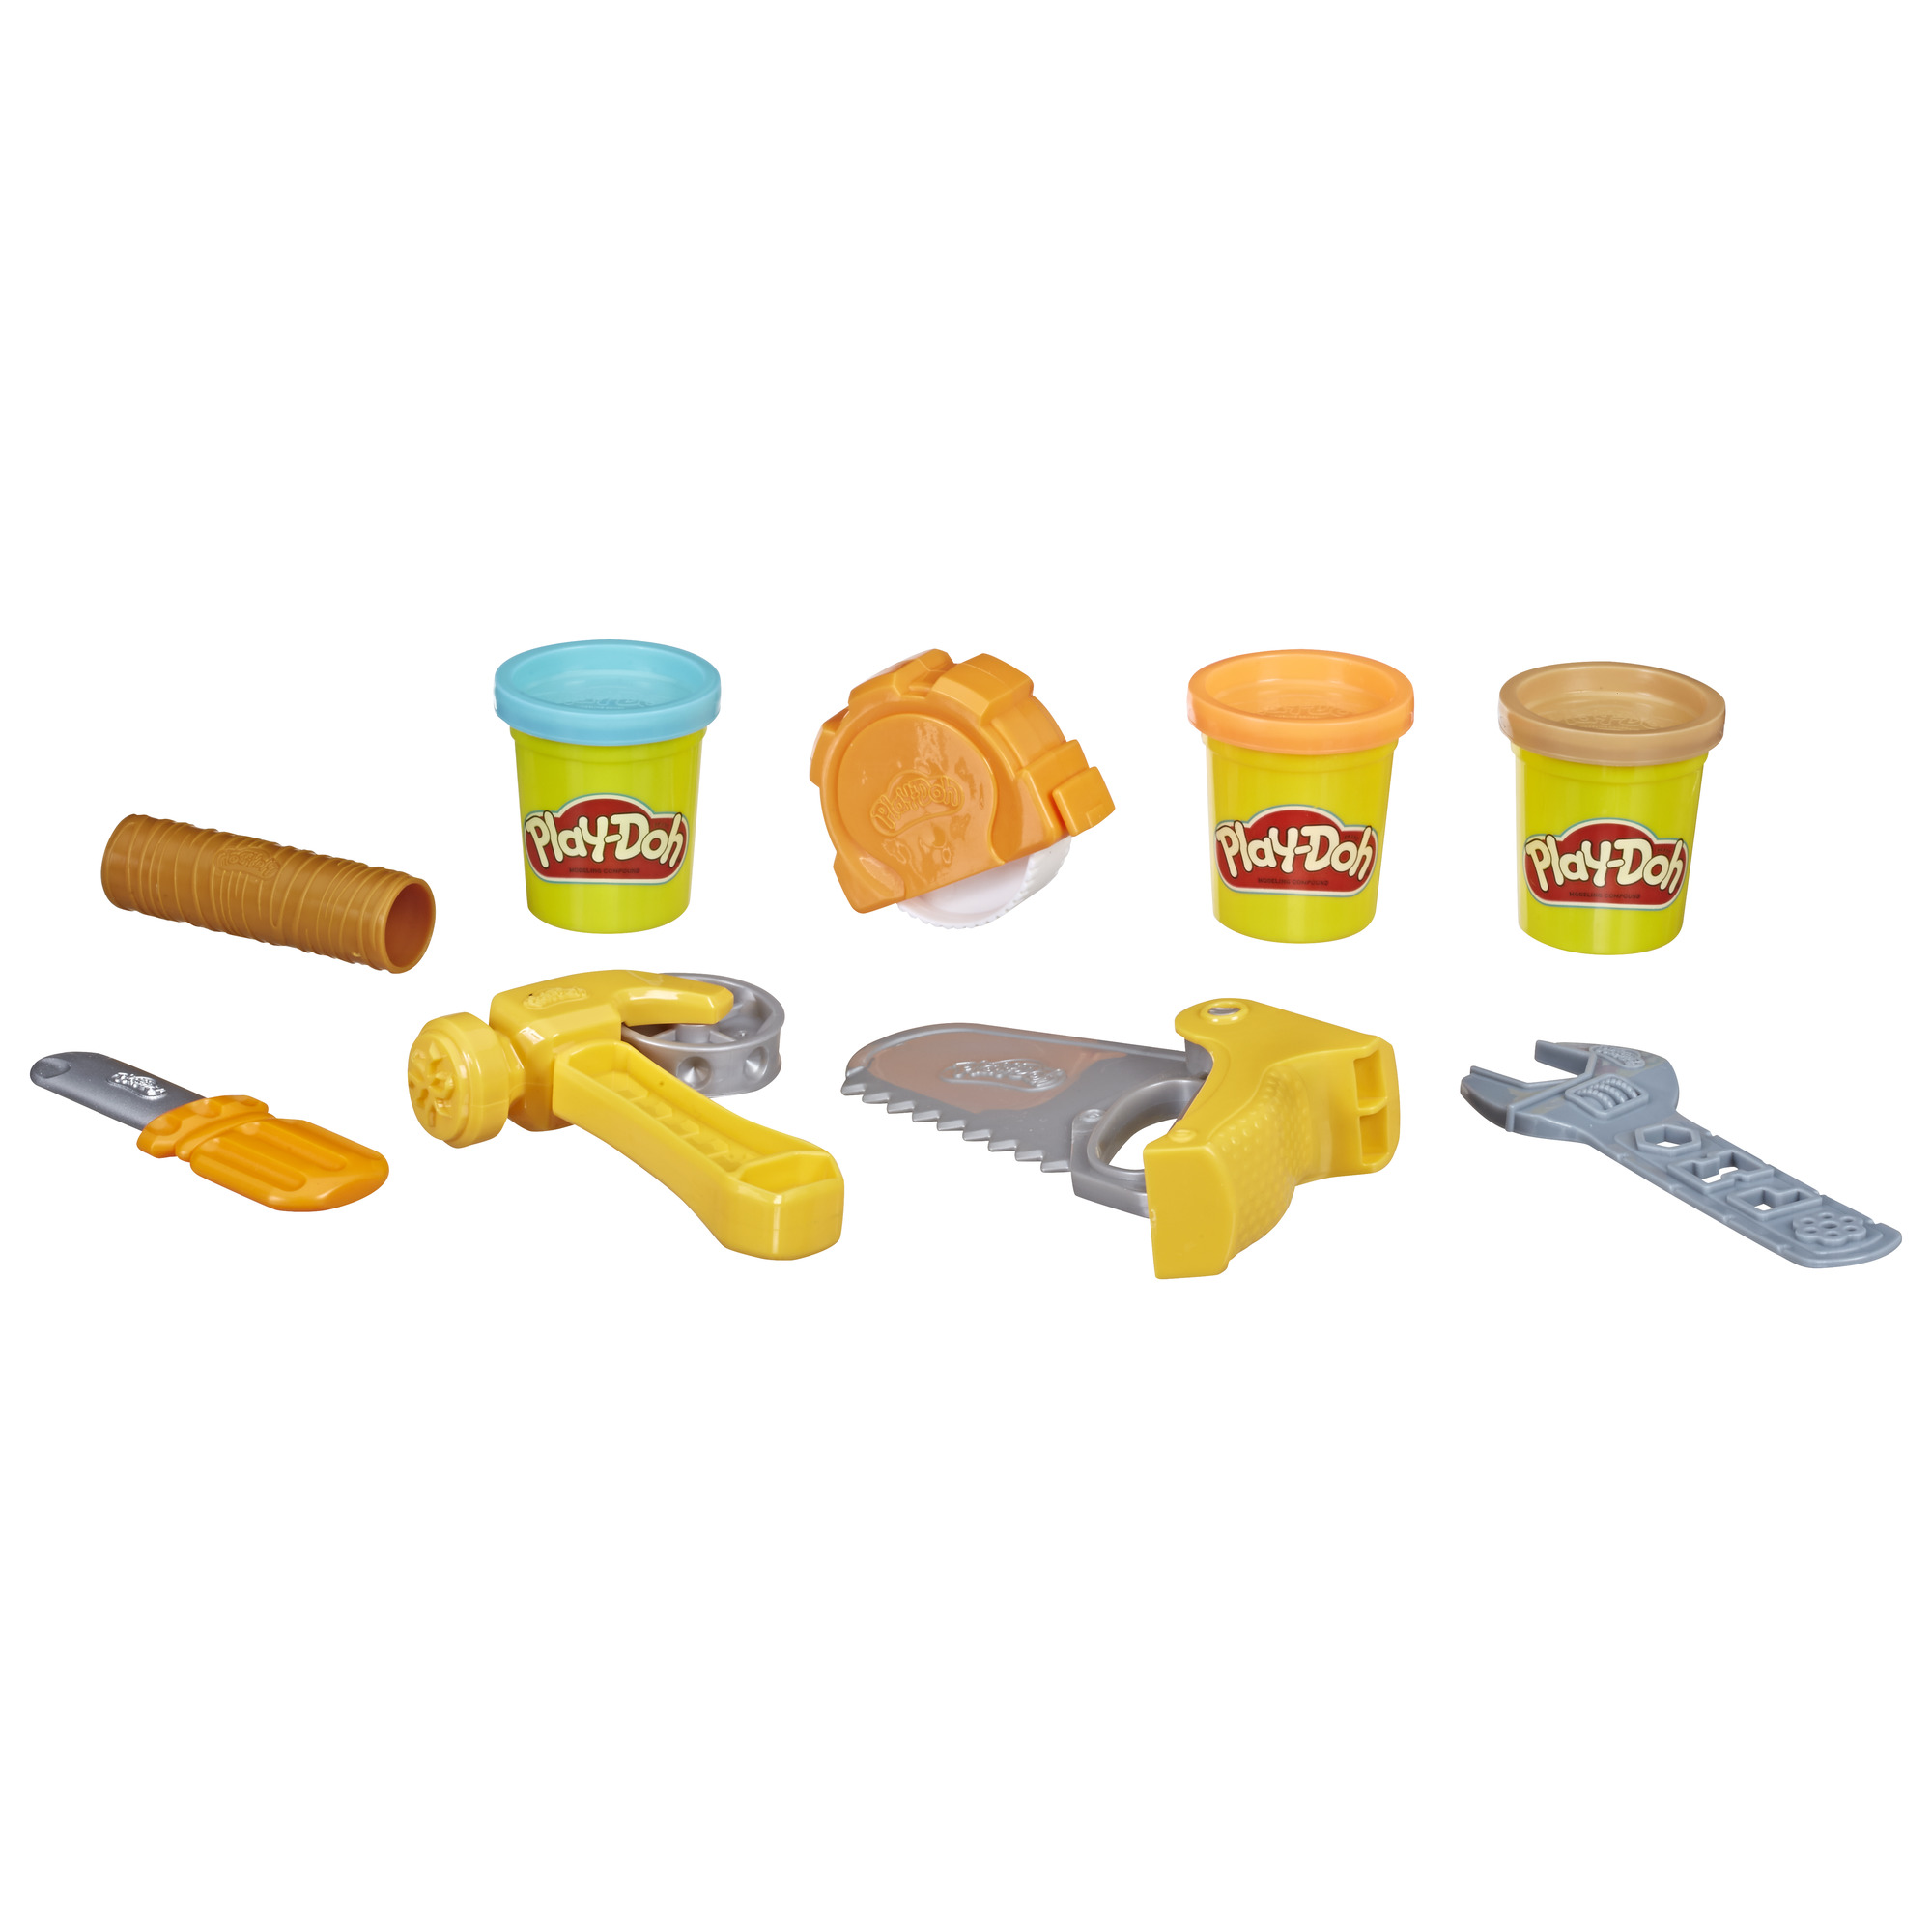 Modelling Dough 5 Textured Rolling Pins Smart Doh For Play Baking Arts Crafts